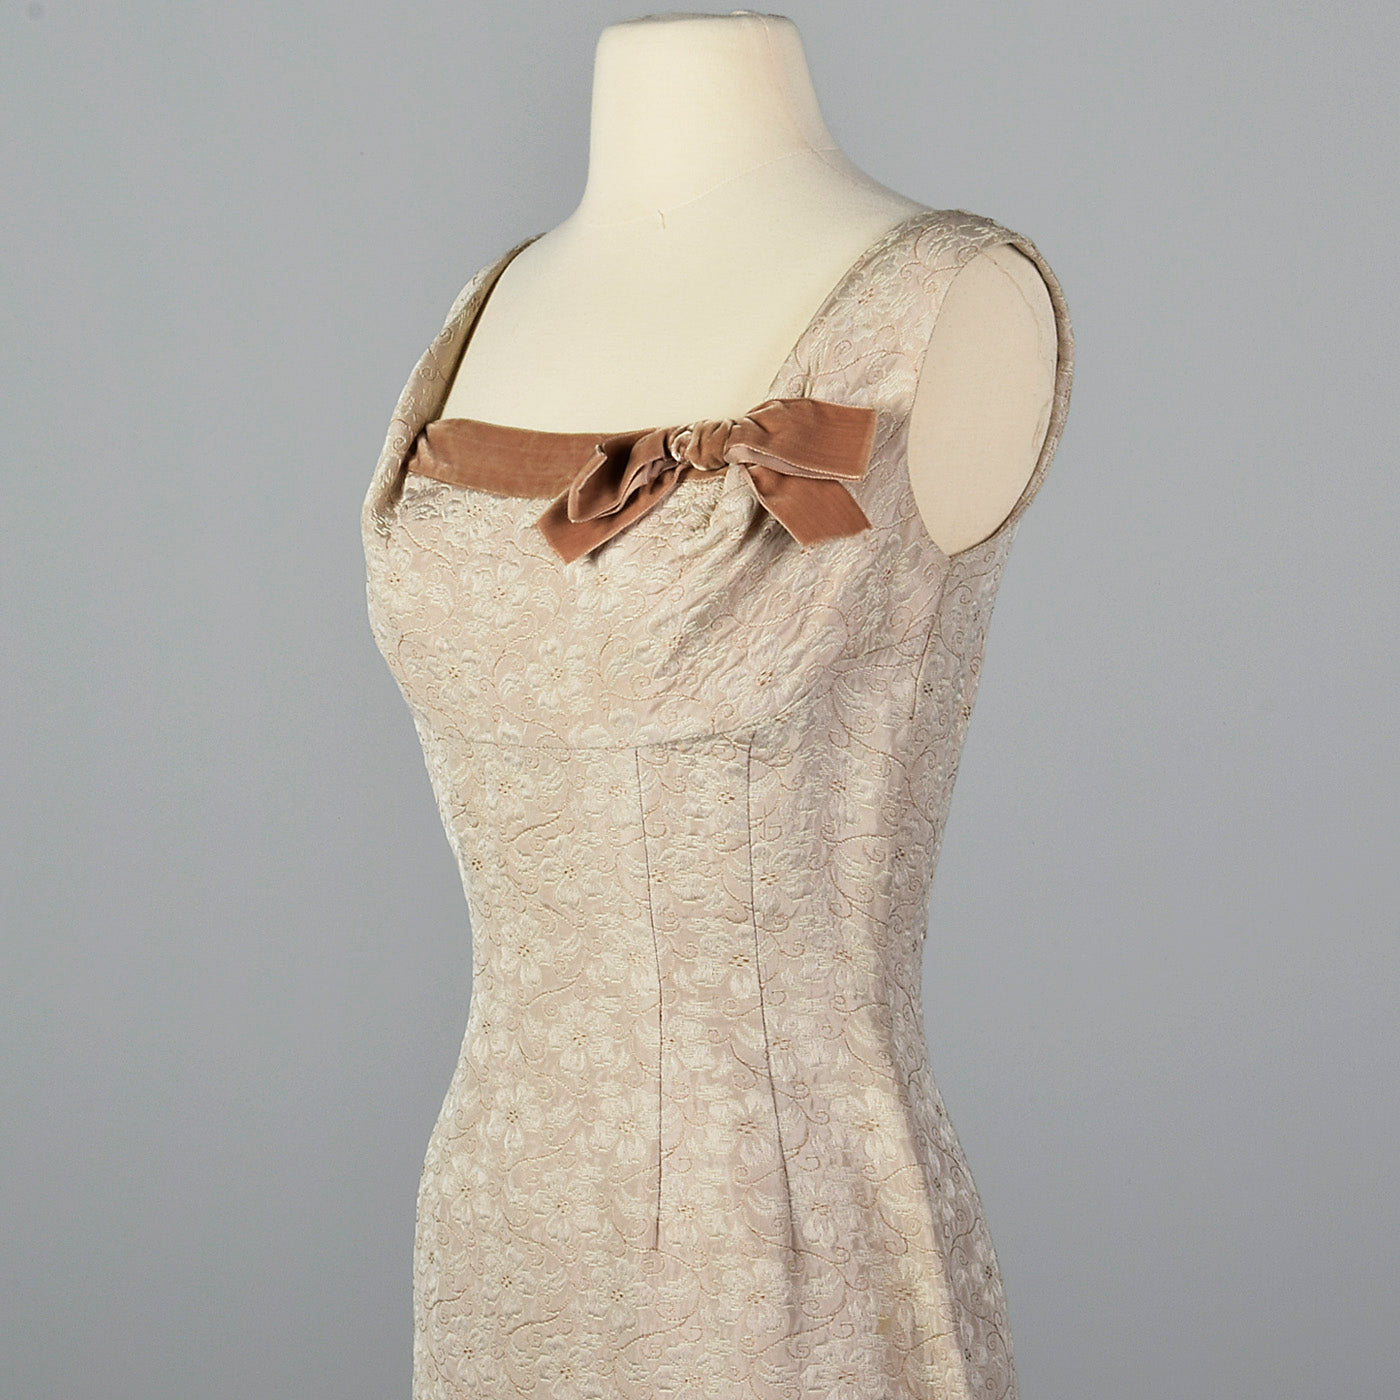 1950s Tan Dress with Mermaid Skirt